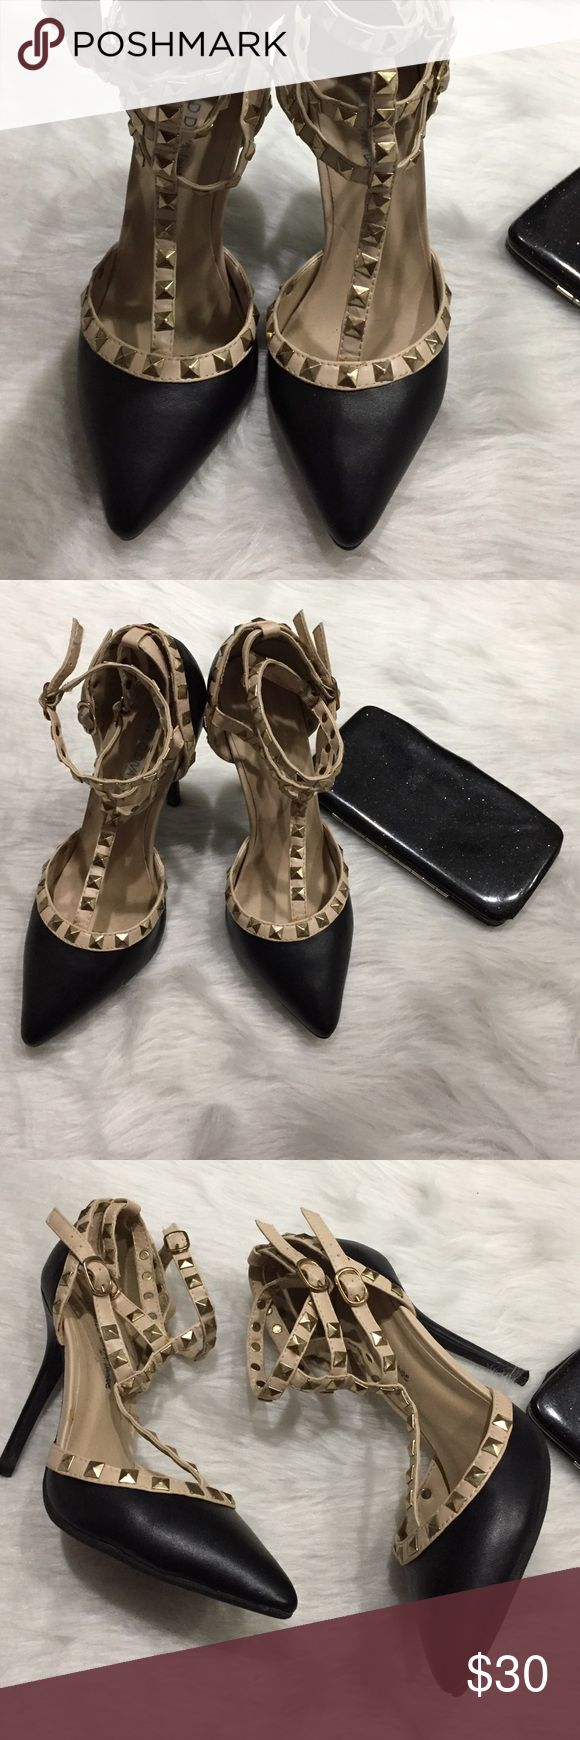 Studded pumps Moving sale! Everything must go. Accepting all reasonable offers. Valentino Rockstud look a like from Wild Diva. Excellent used condition. Three sets of rockstud straps. T-strap design. Size 8. Wild Diva Shoes Heels